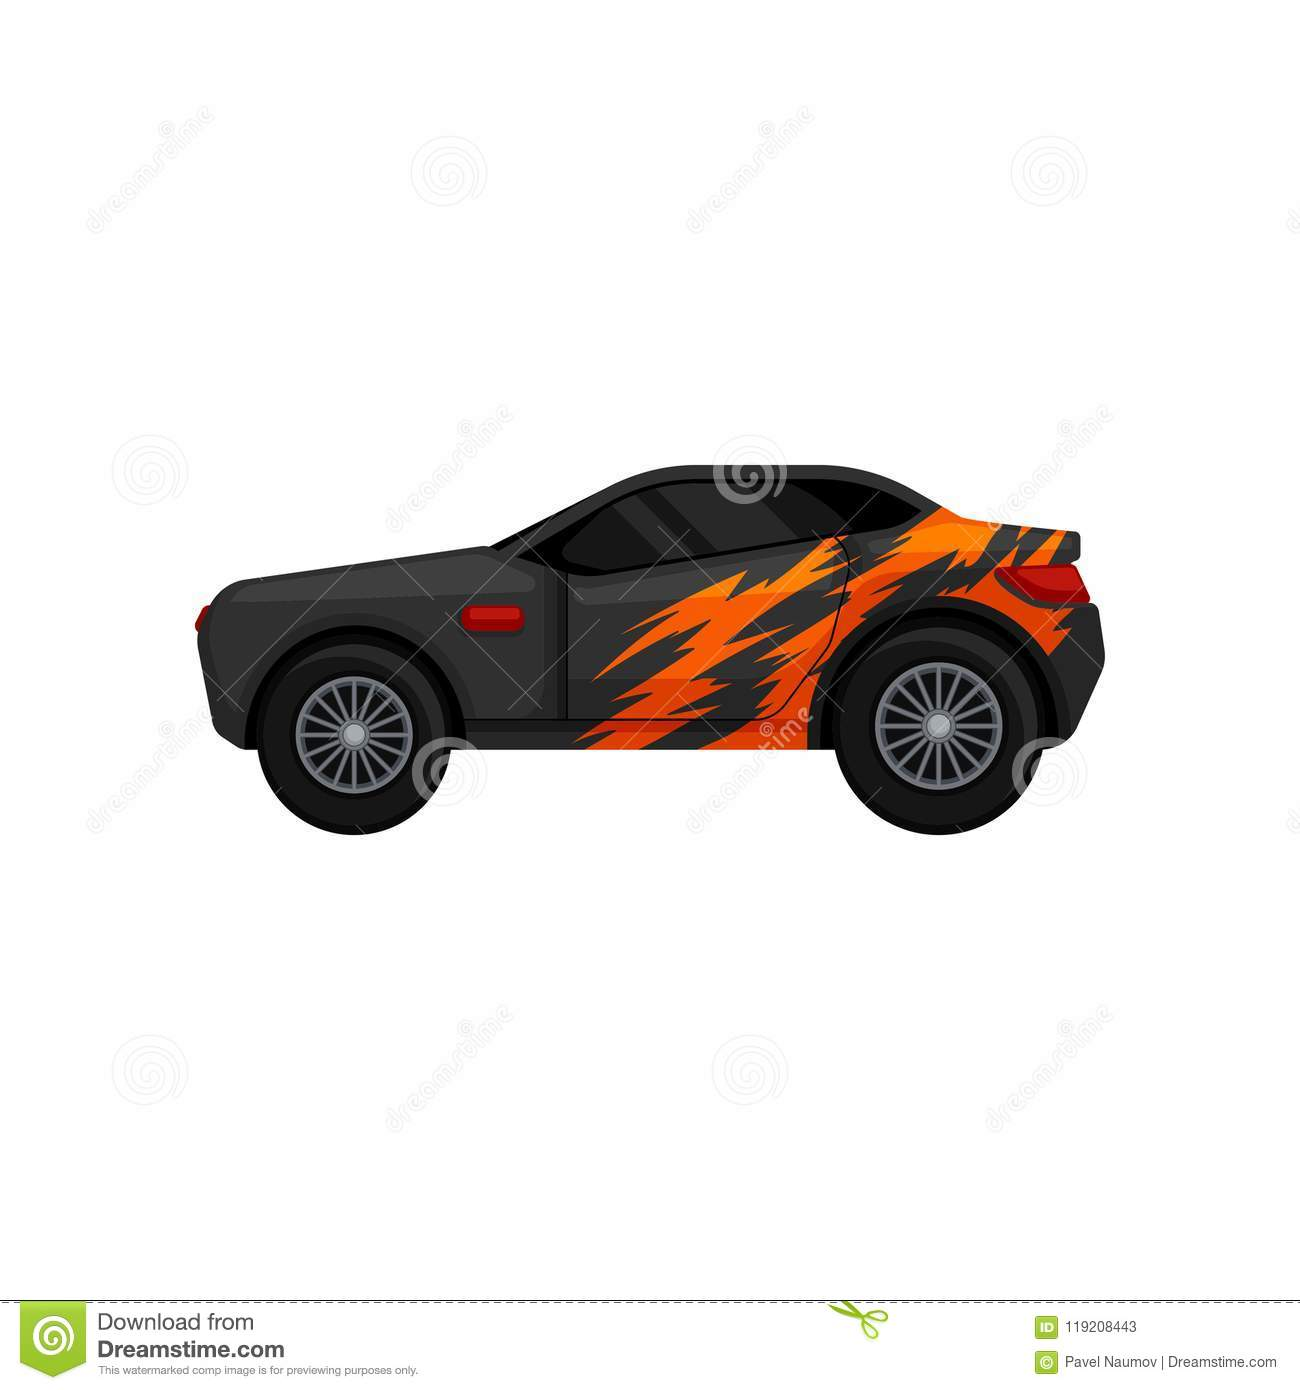 Gray racing car with black tinted windows and orange wrap decal. Automobile theme. Flat vector for mobile game, promo